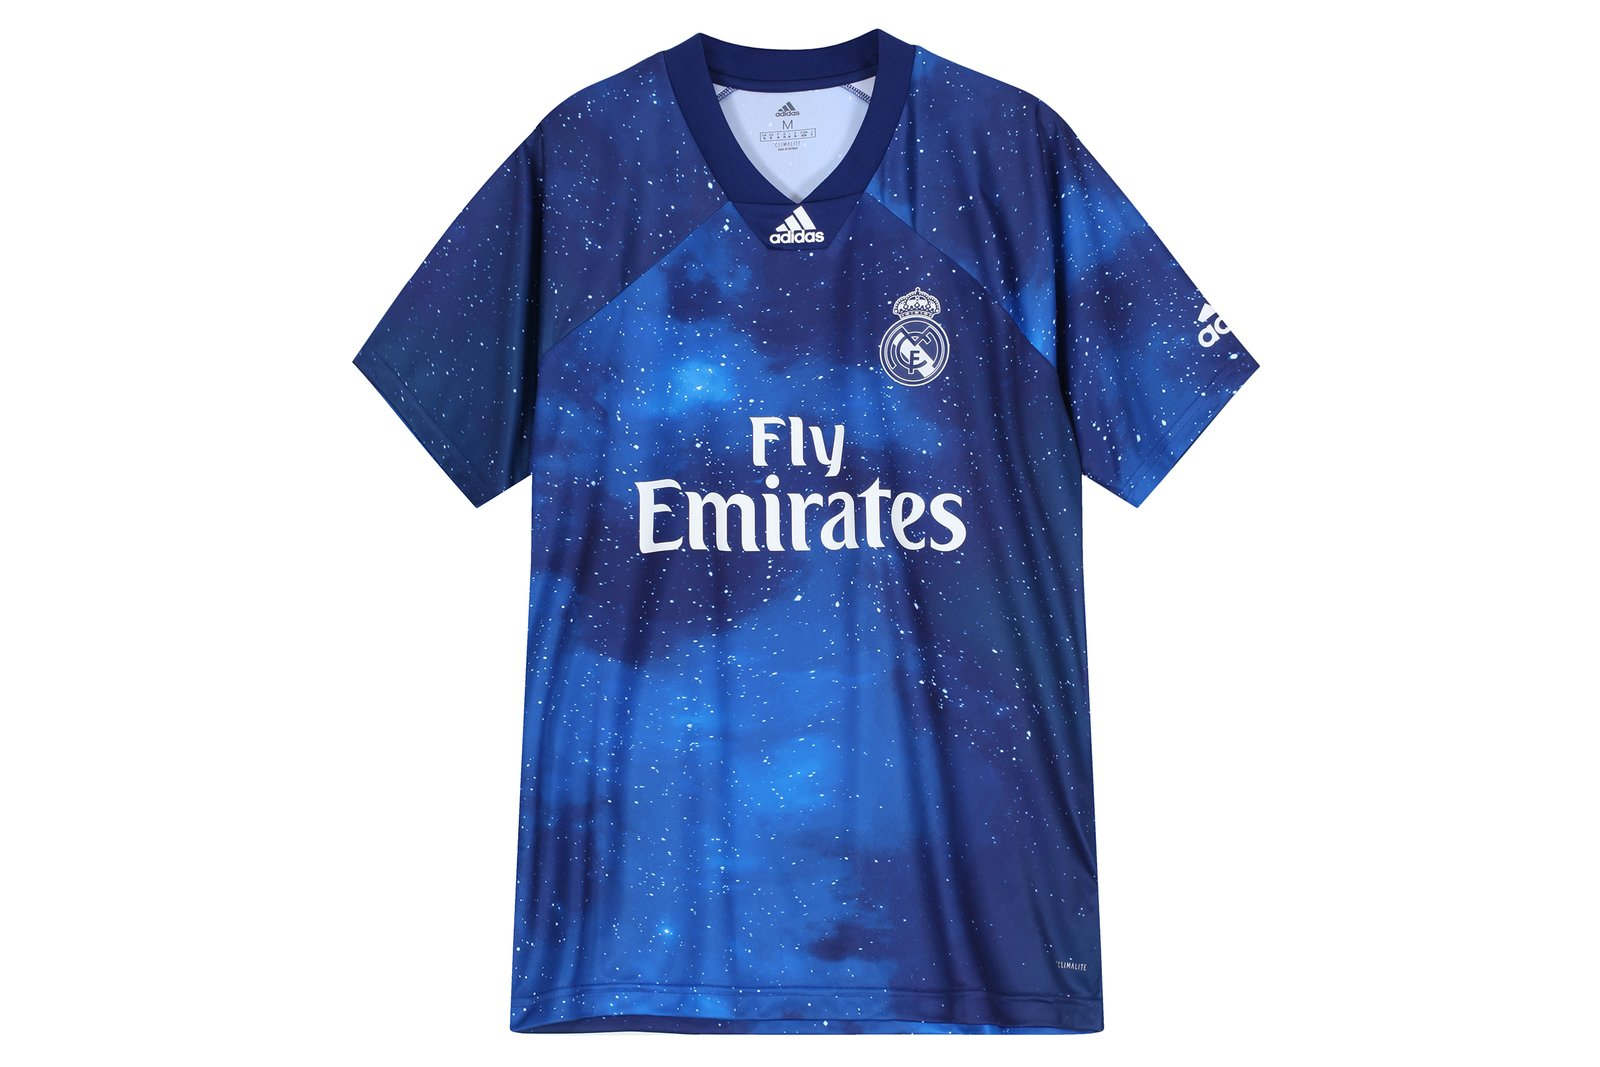 Real Madrid X Adidas X Fifa 19 Digital Fourth Kit | 1819